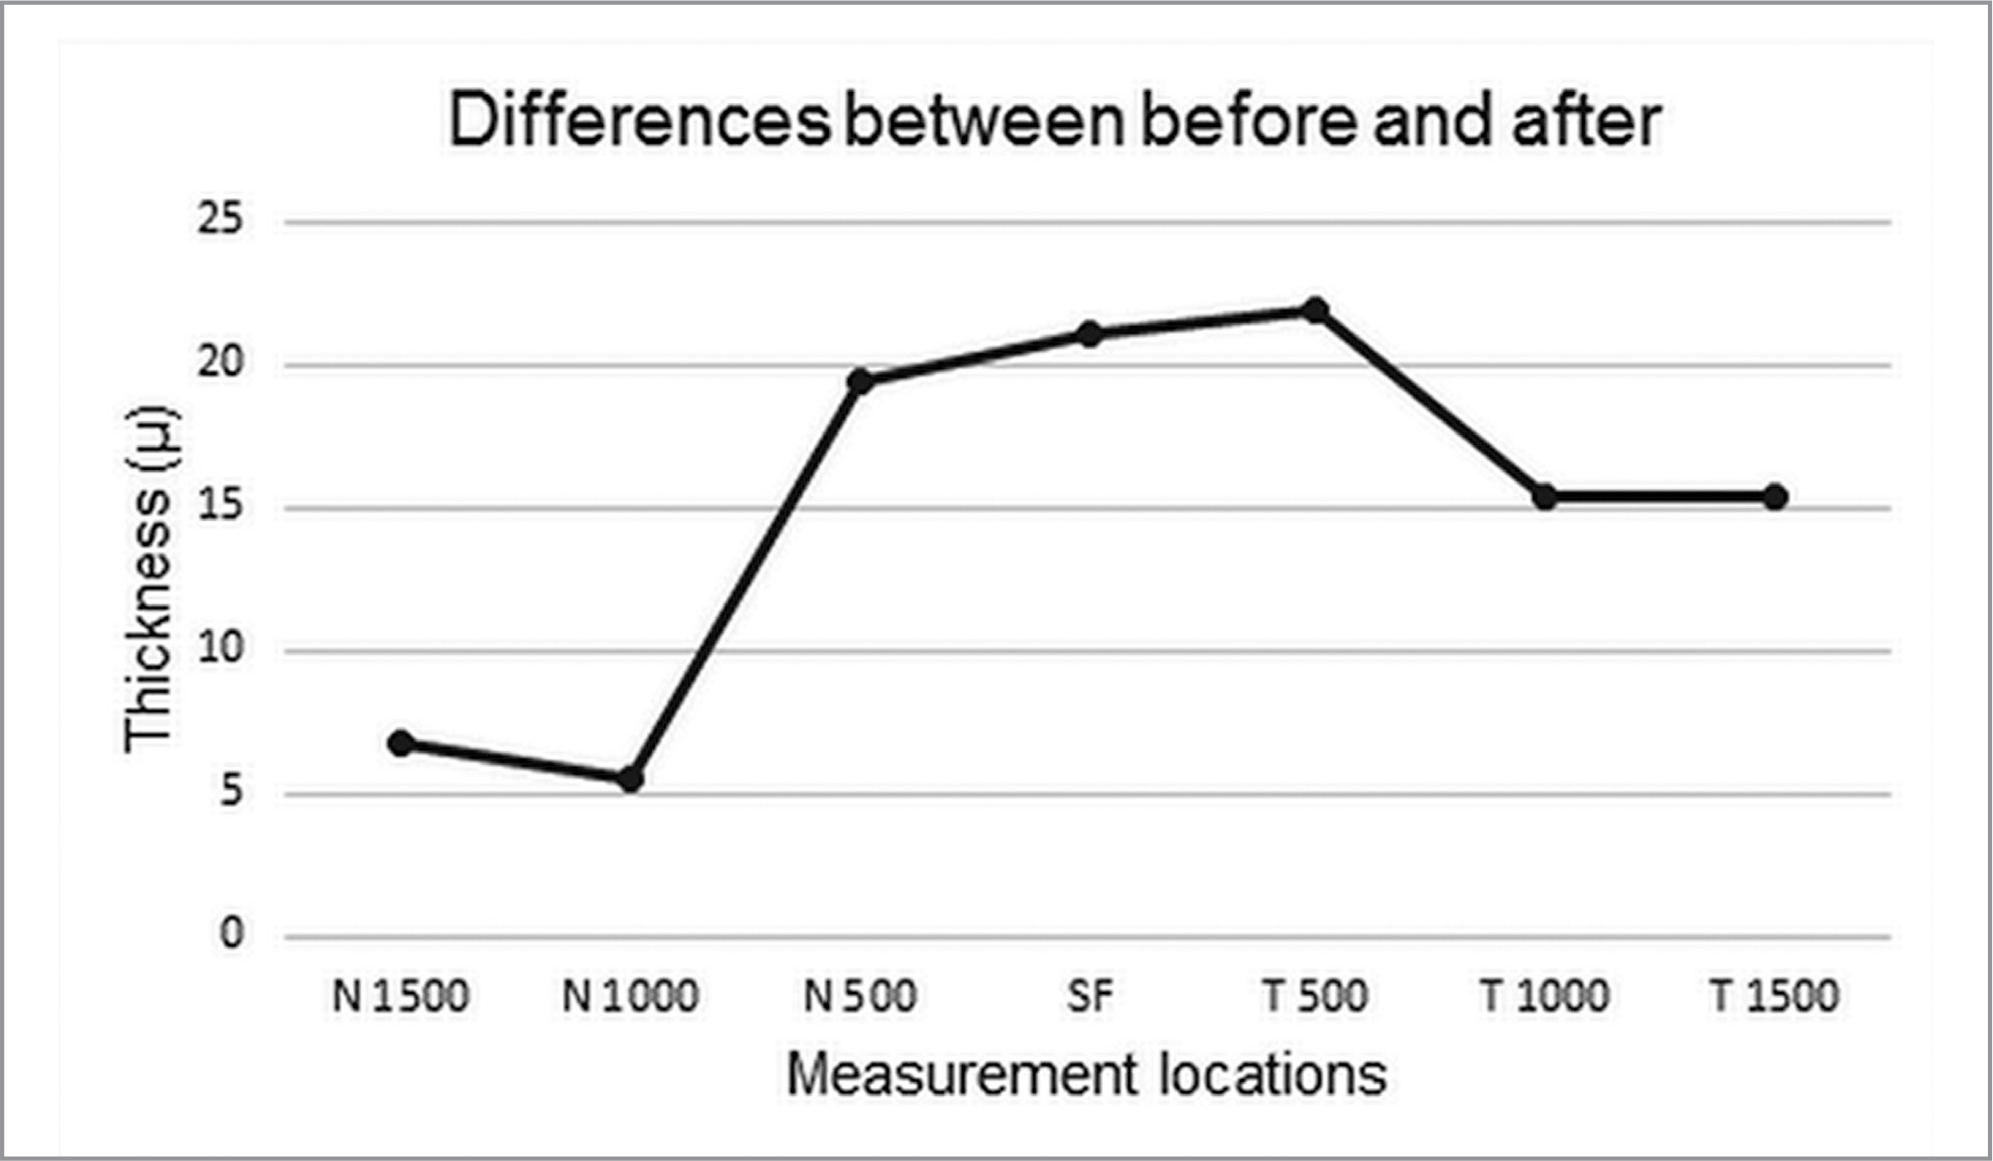 The differences between before and after treatment in choroidal thickness values.